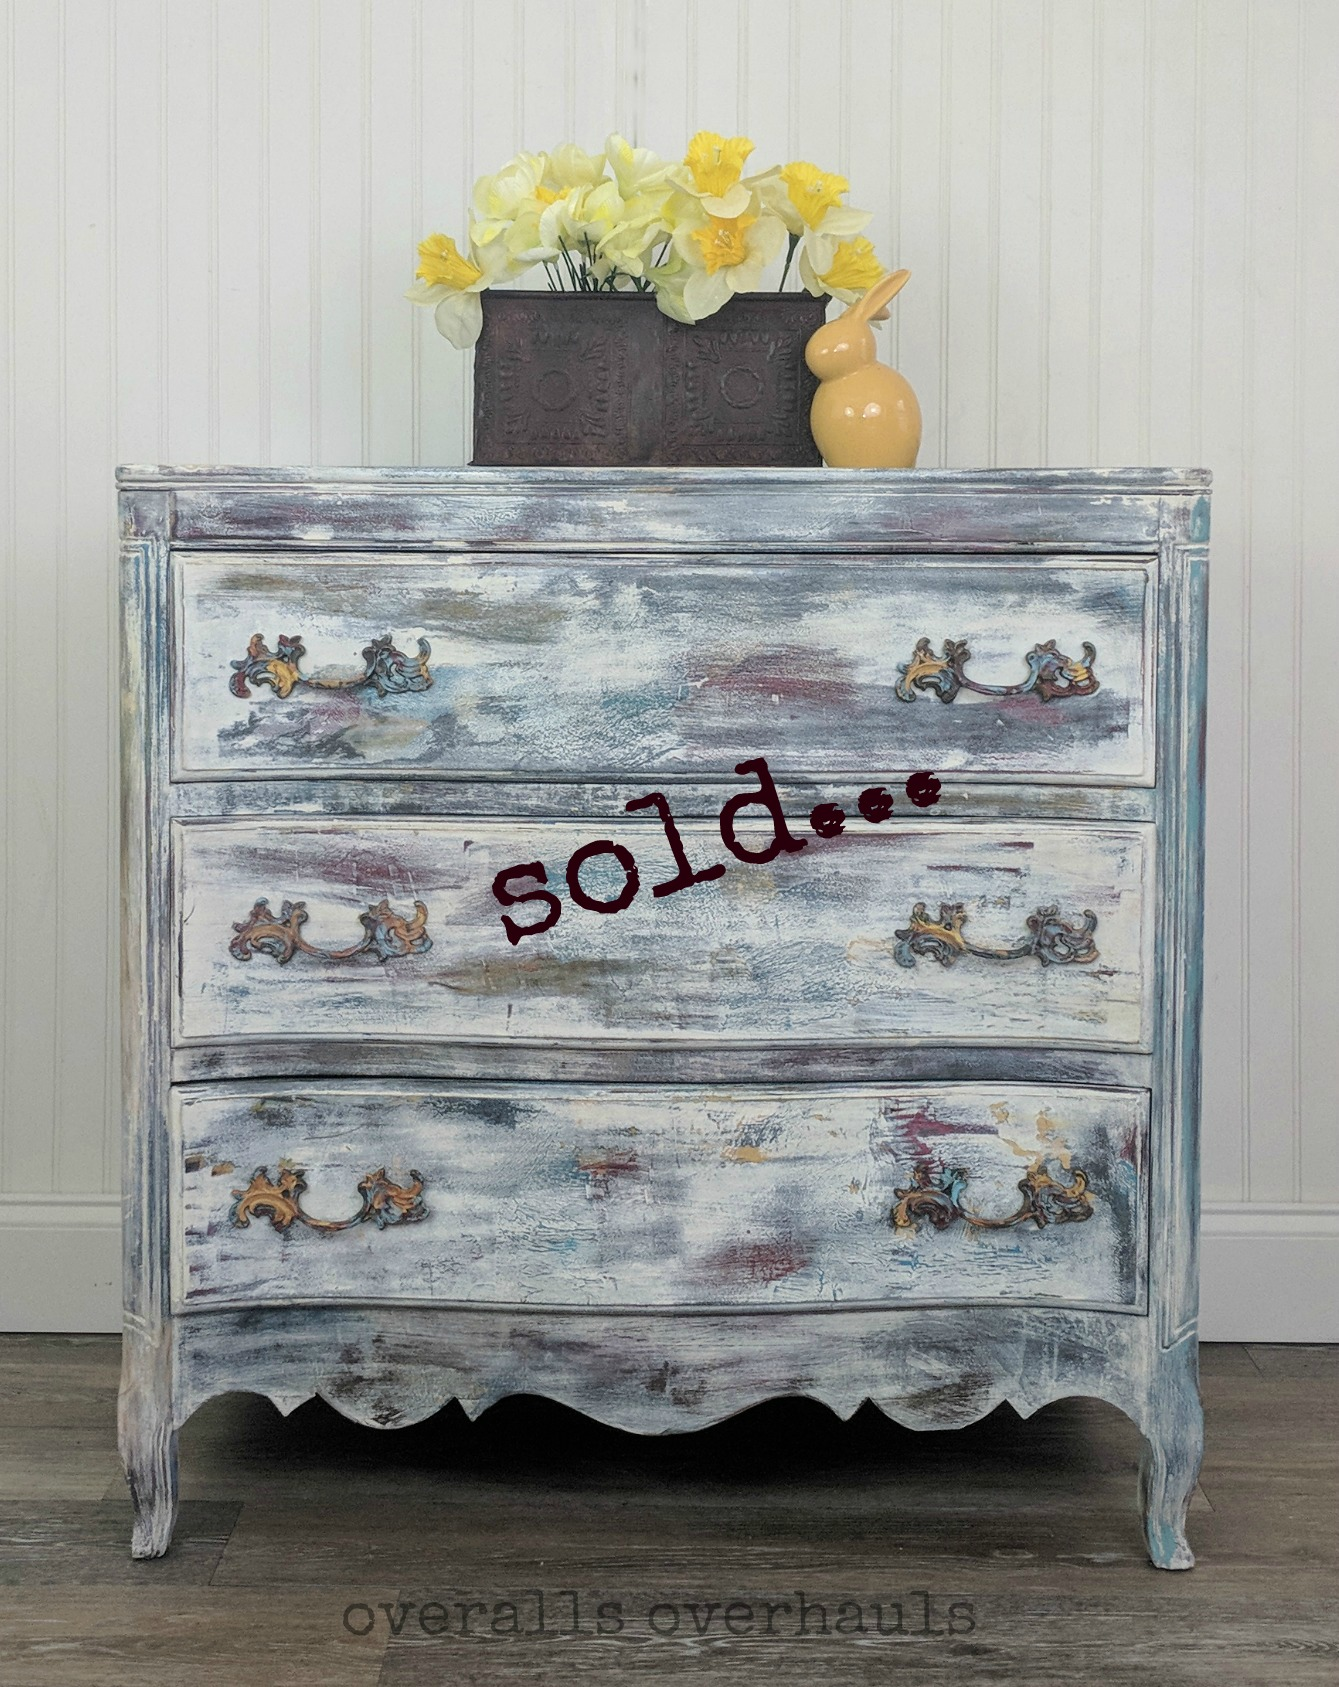 Hippy chic dresser. Unavailable. I can recreate this finish for you on a piece you own or on a piece I help you find.